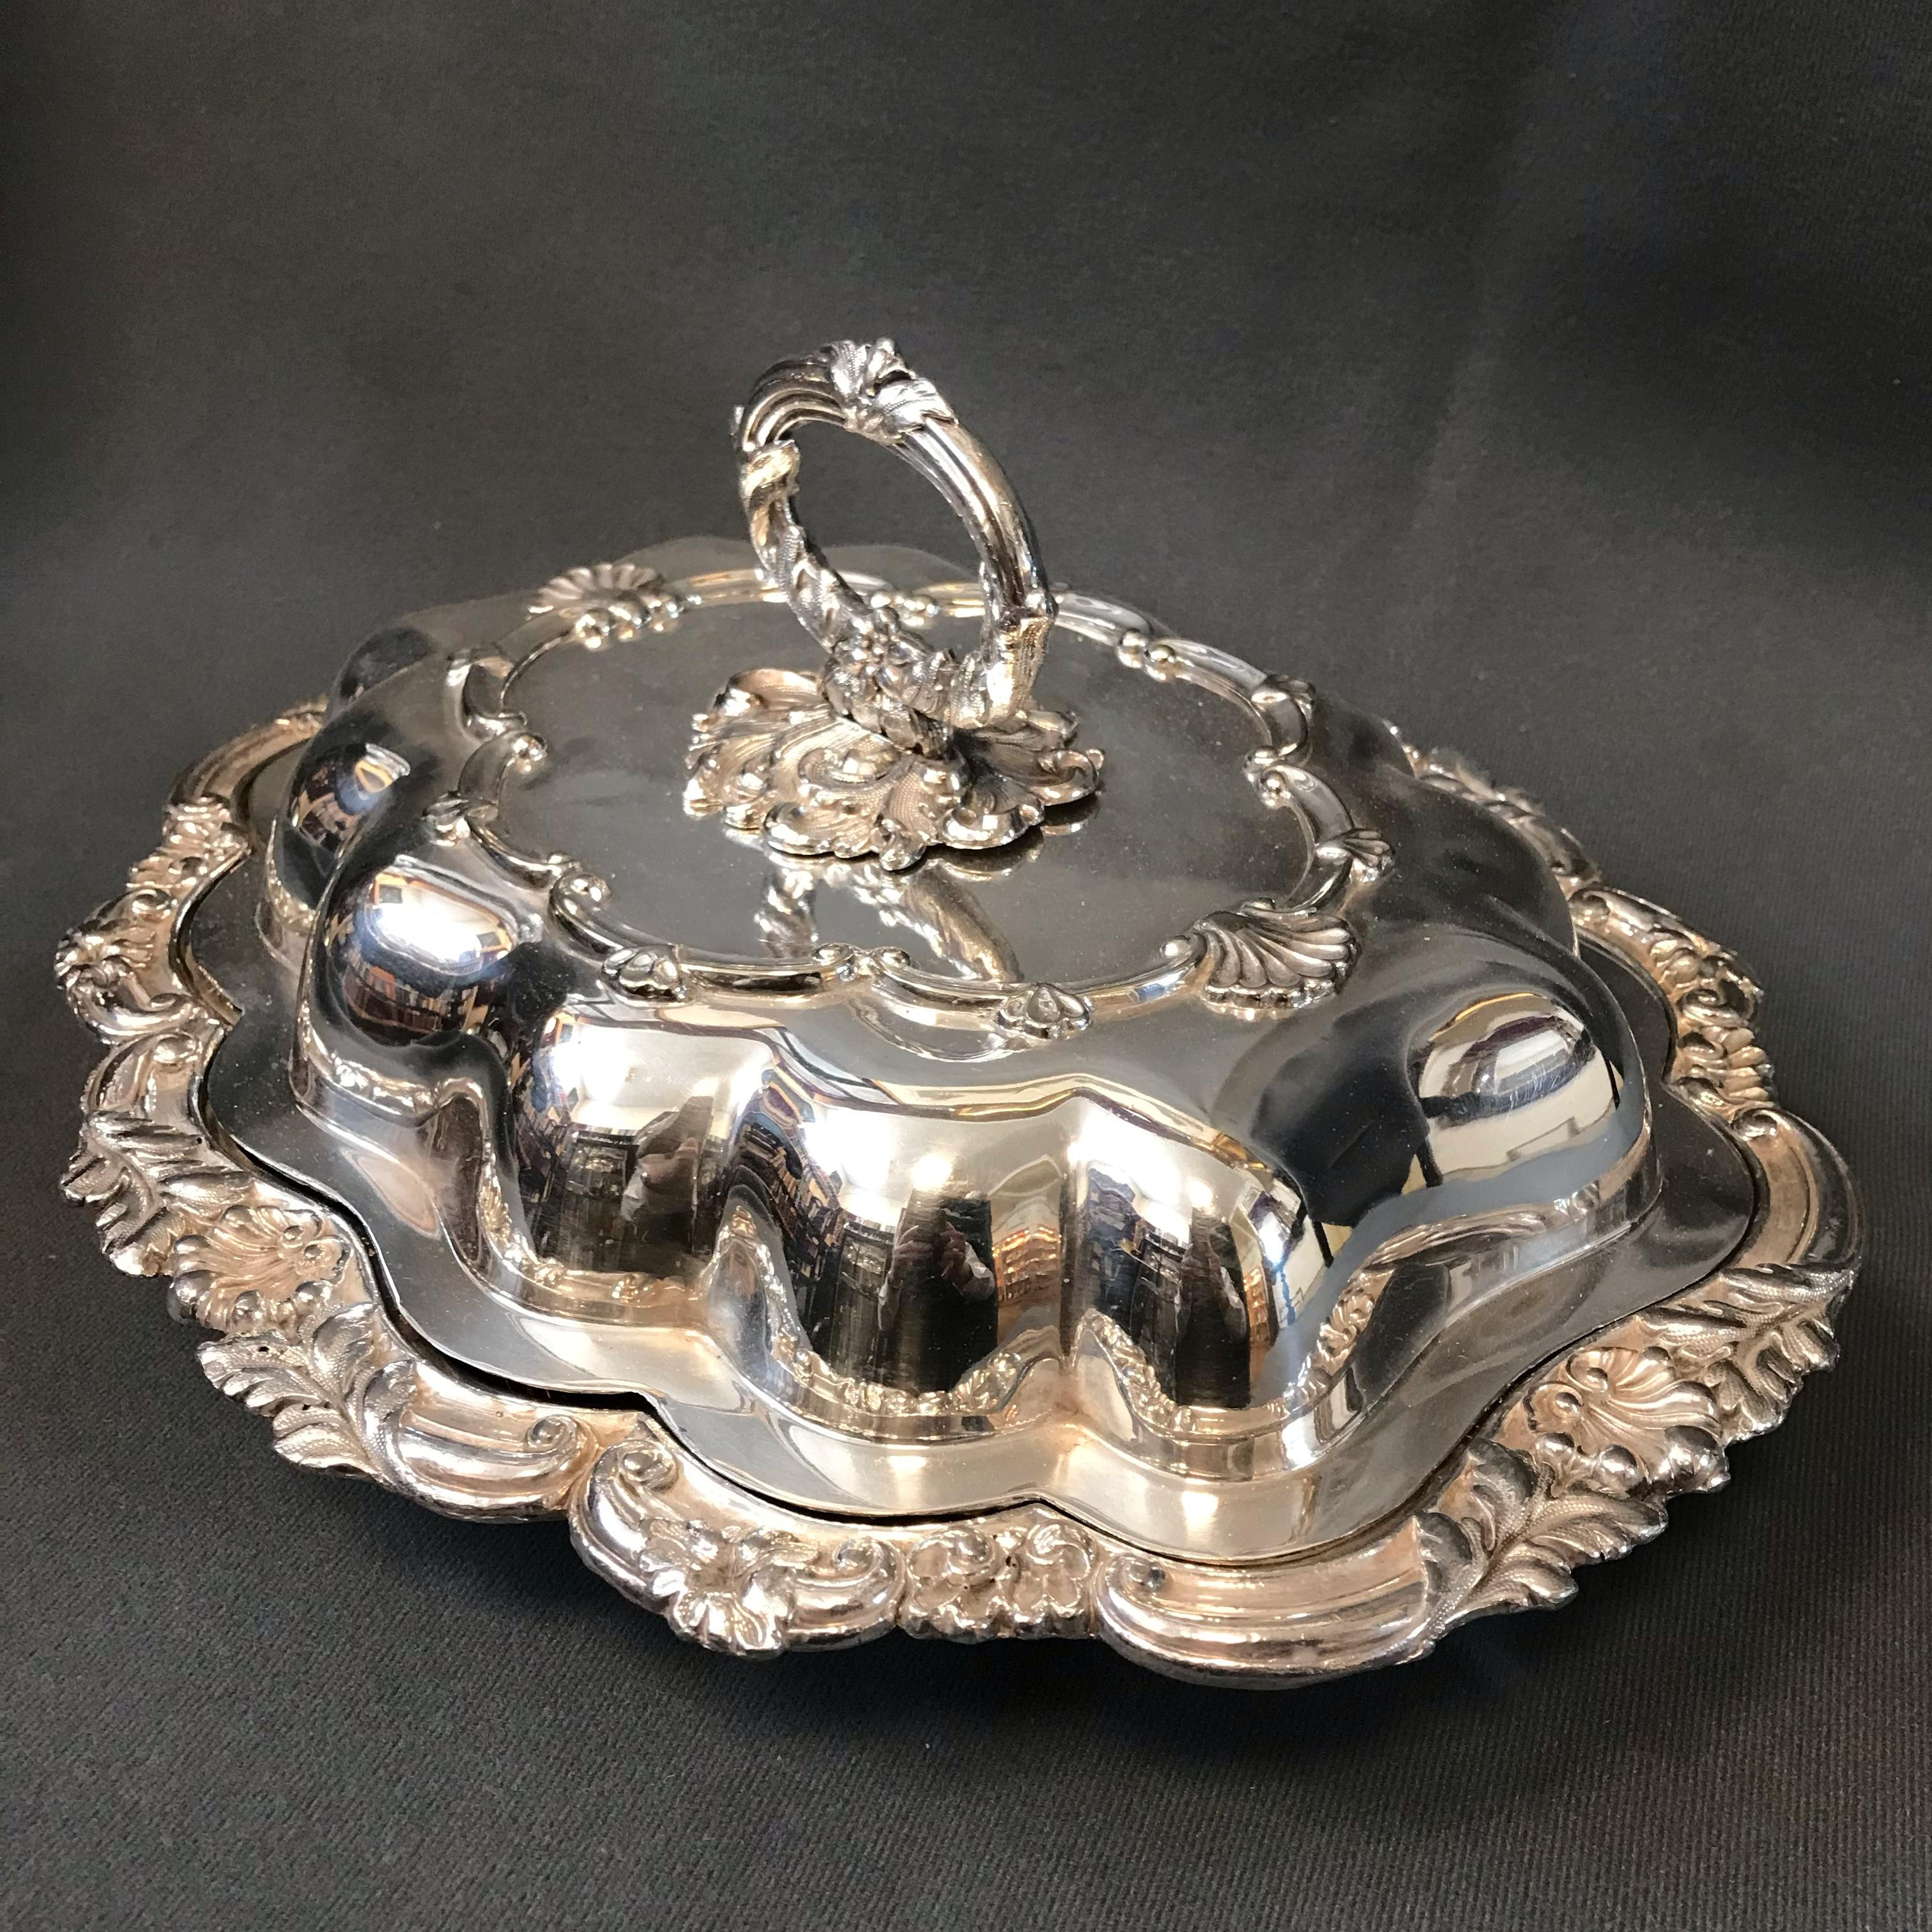 Victorian Old Sheffield Plate Entree Dish - Antique Silver